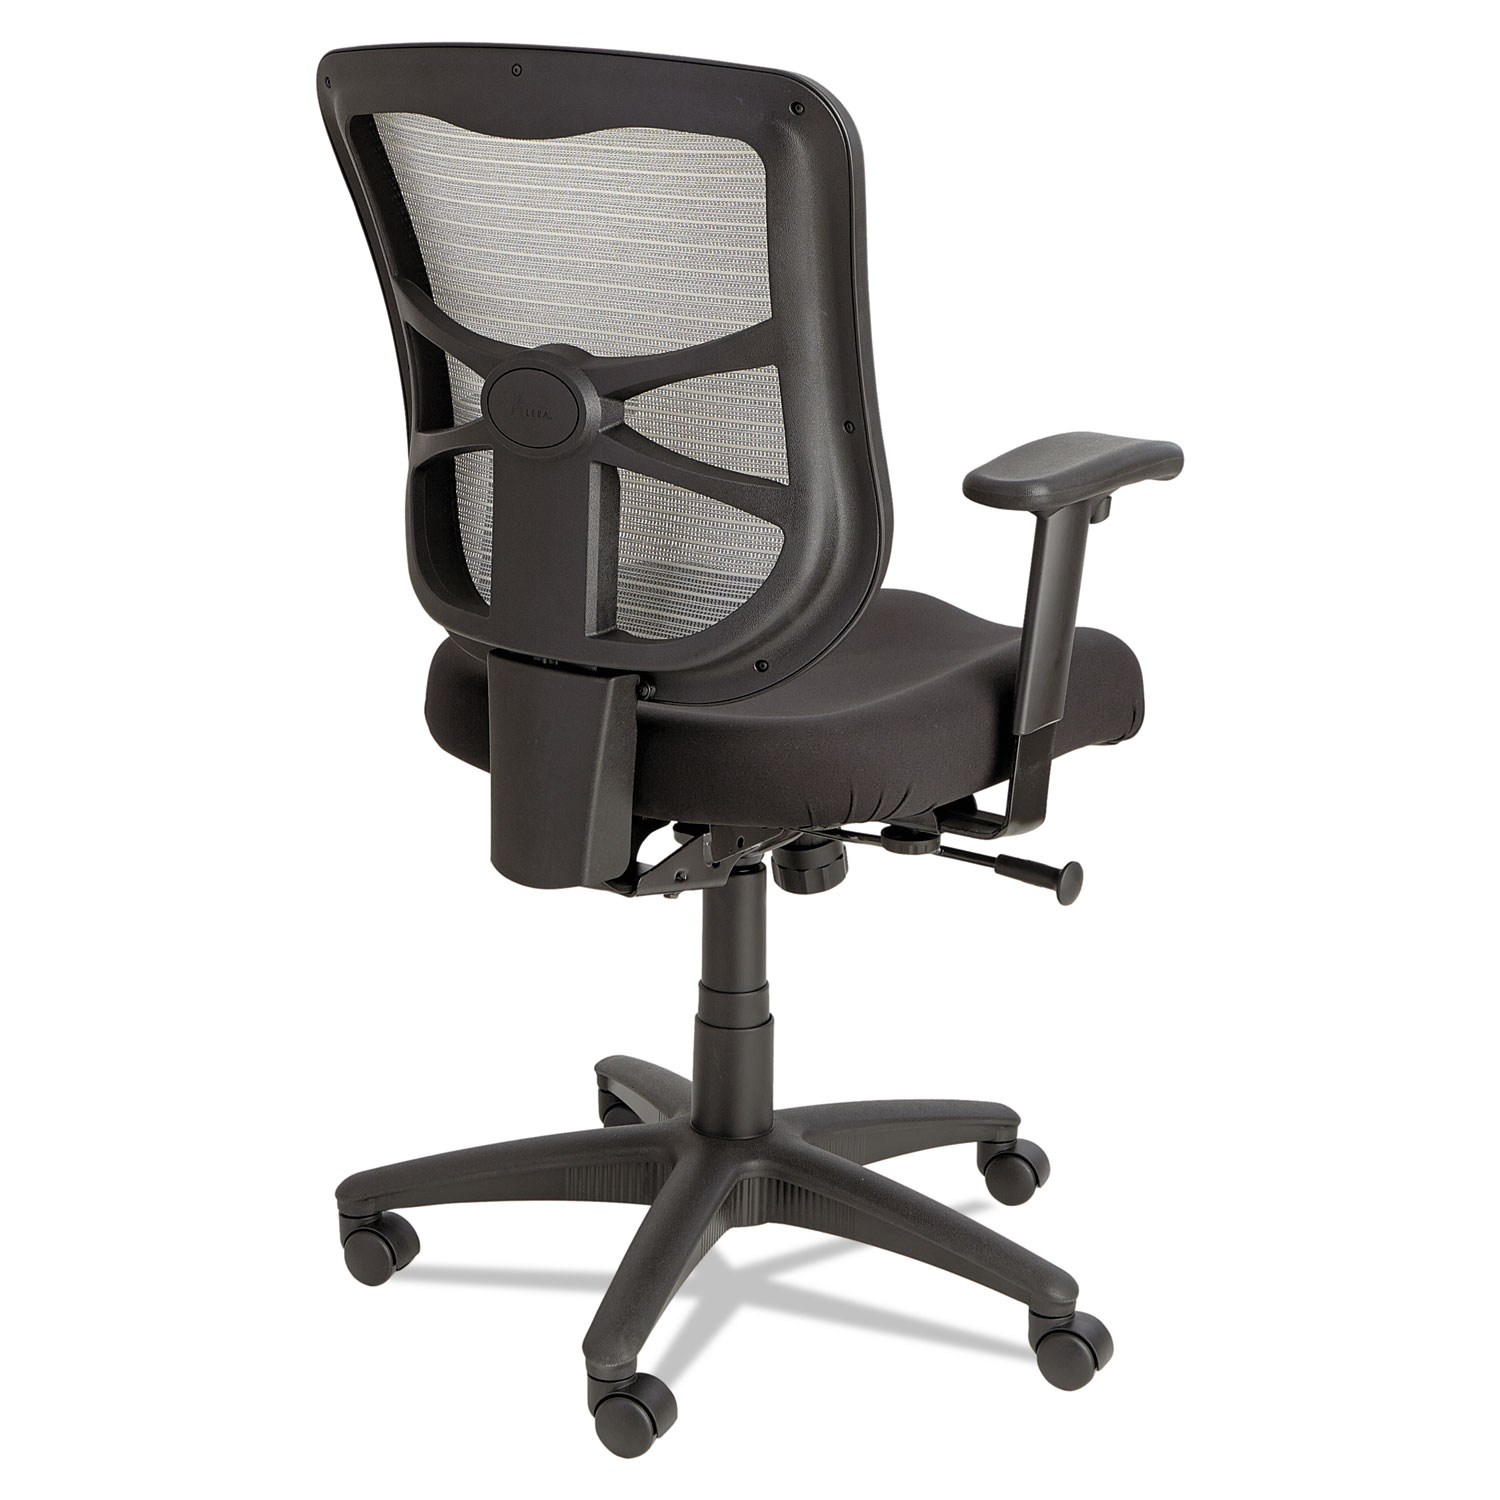 Alera Chair Alera Elusion Series Mesh Mid Back Swivel Tilt Chair By